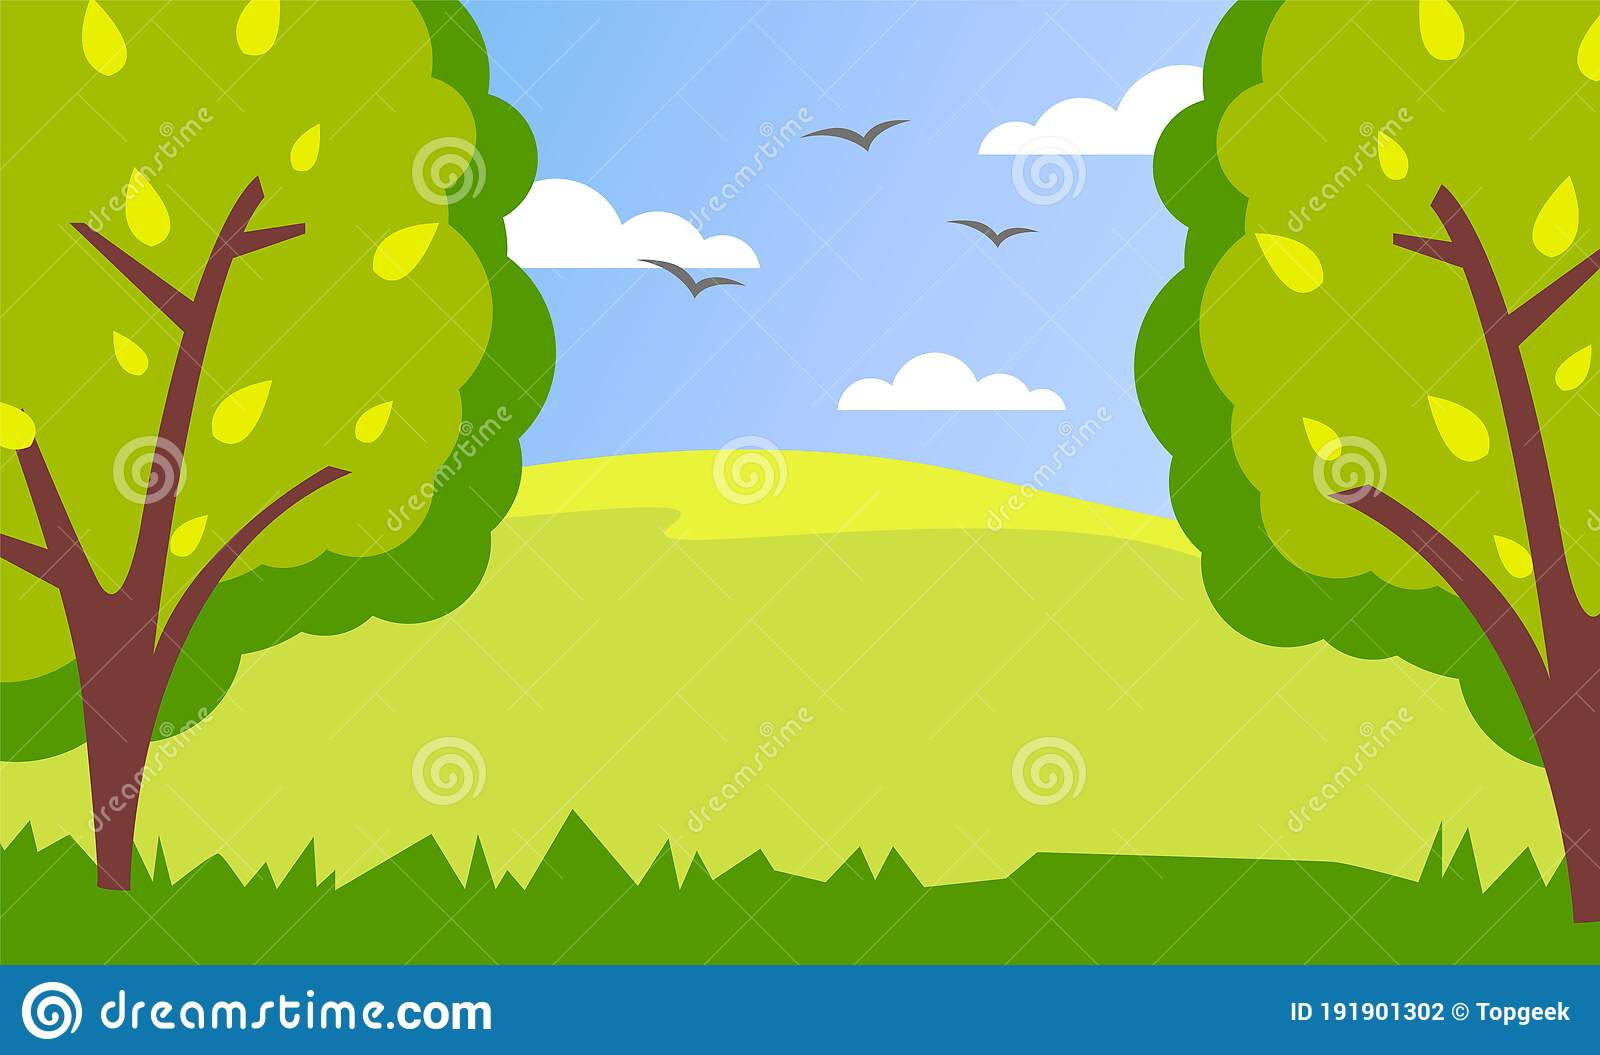 Spring Or Summer Green Cartoon Country Landscape With Green Fields High Trees And Cloudy Sky Stock Vector Illustration Of Farm Bush 191901302